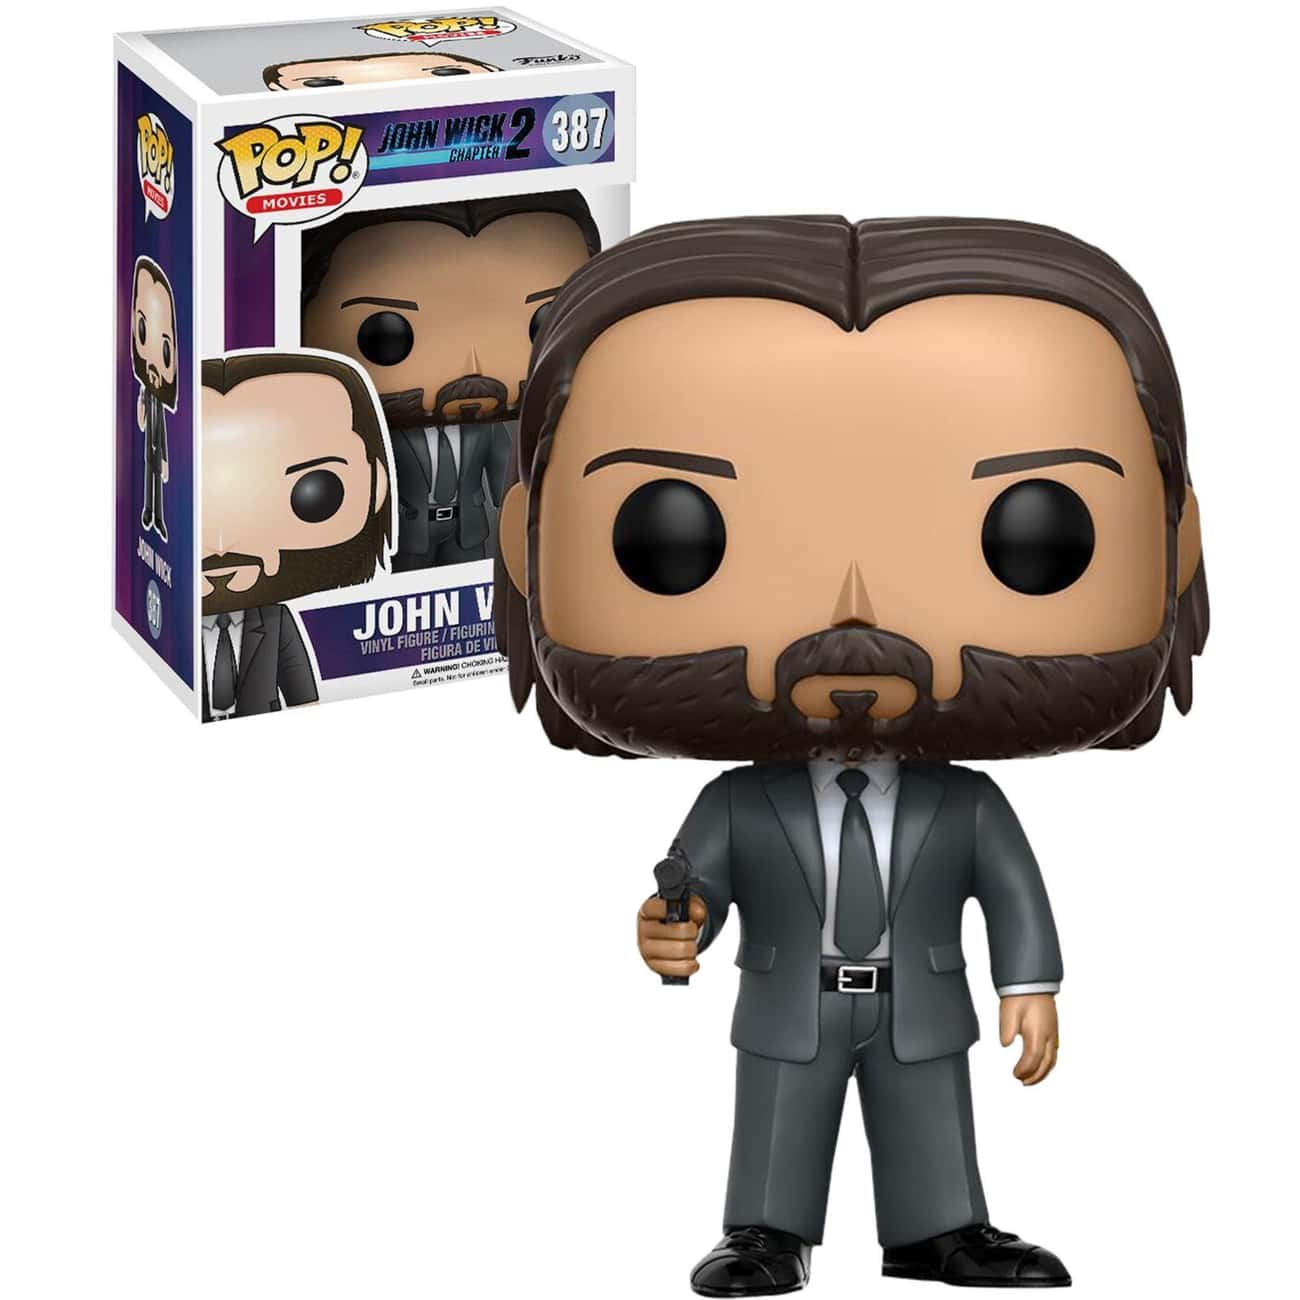 John Wick is listed (or ranked) 2 on the list Funko Pops That Actually Look Like The Characters